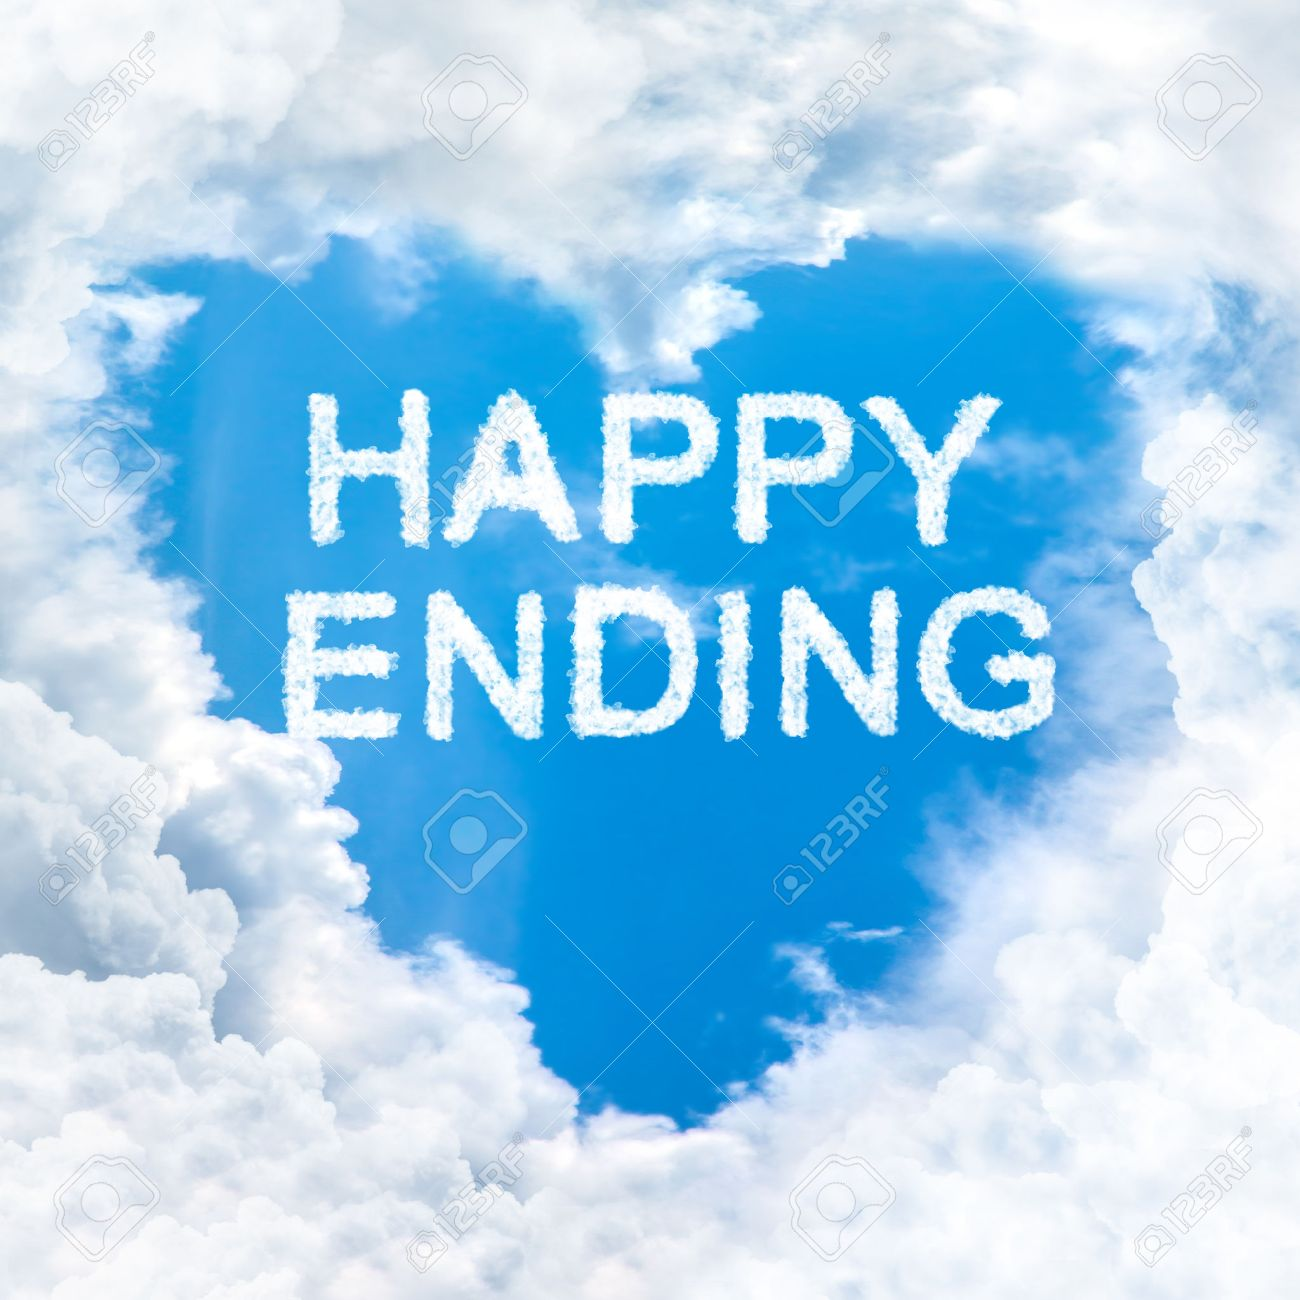 Latest Episode of Happy Endings